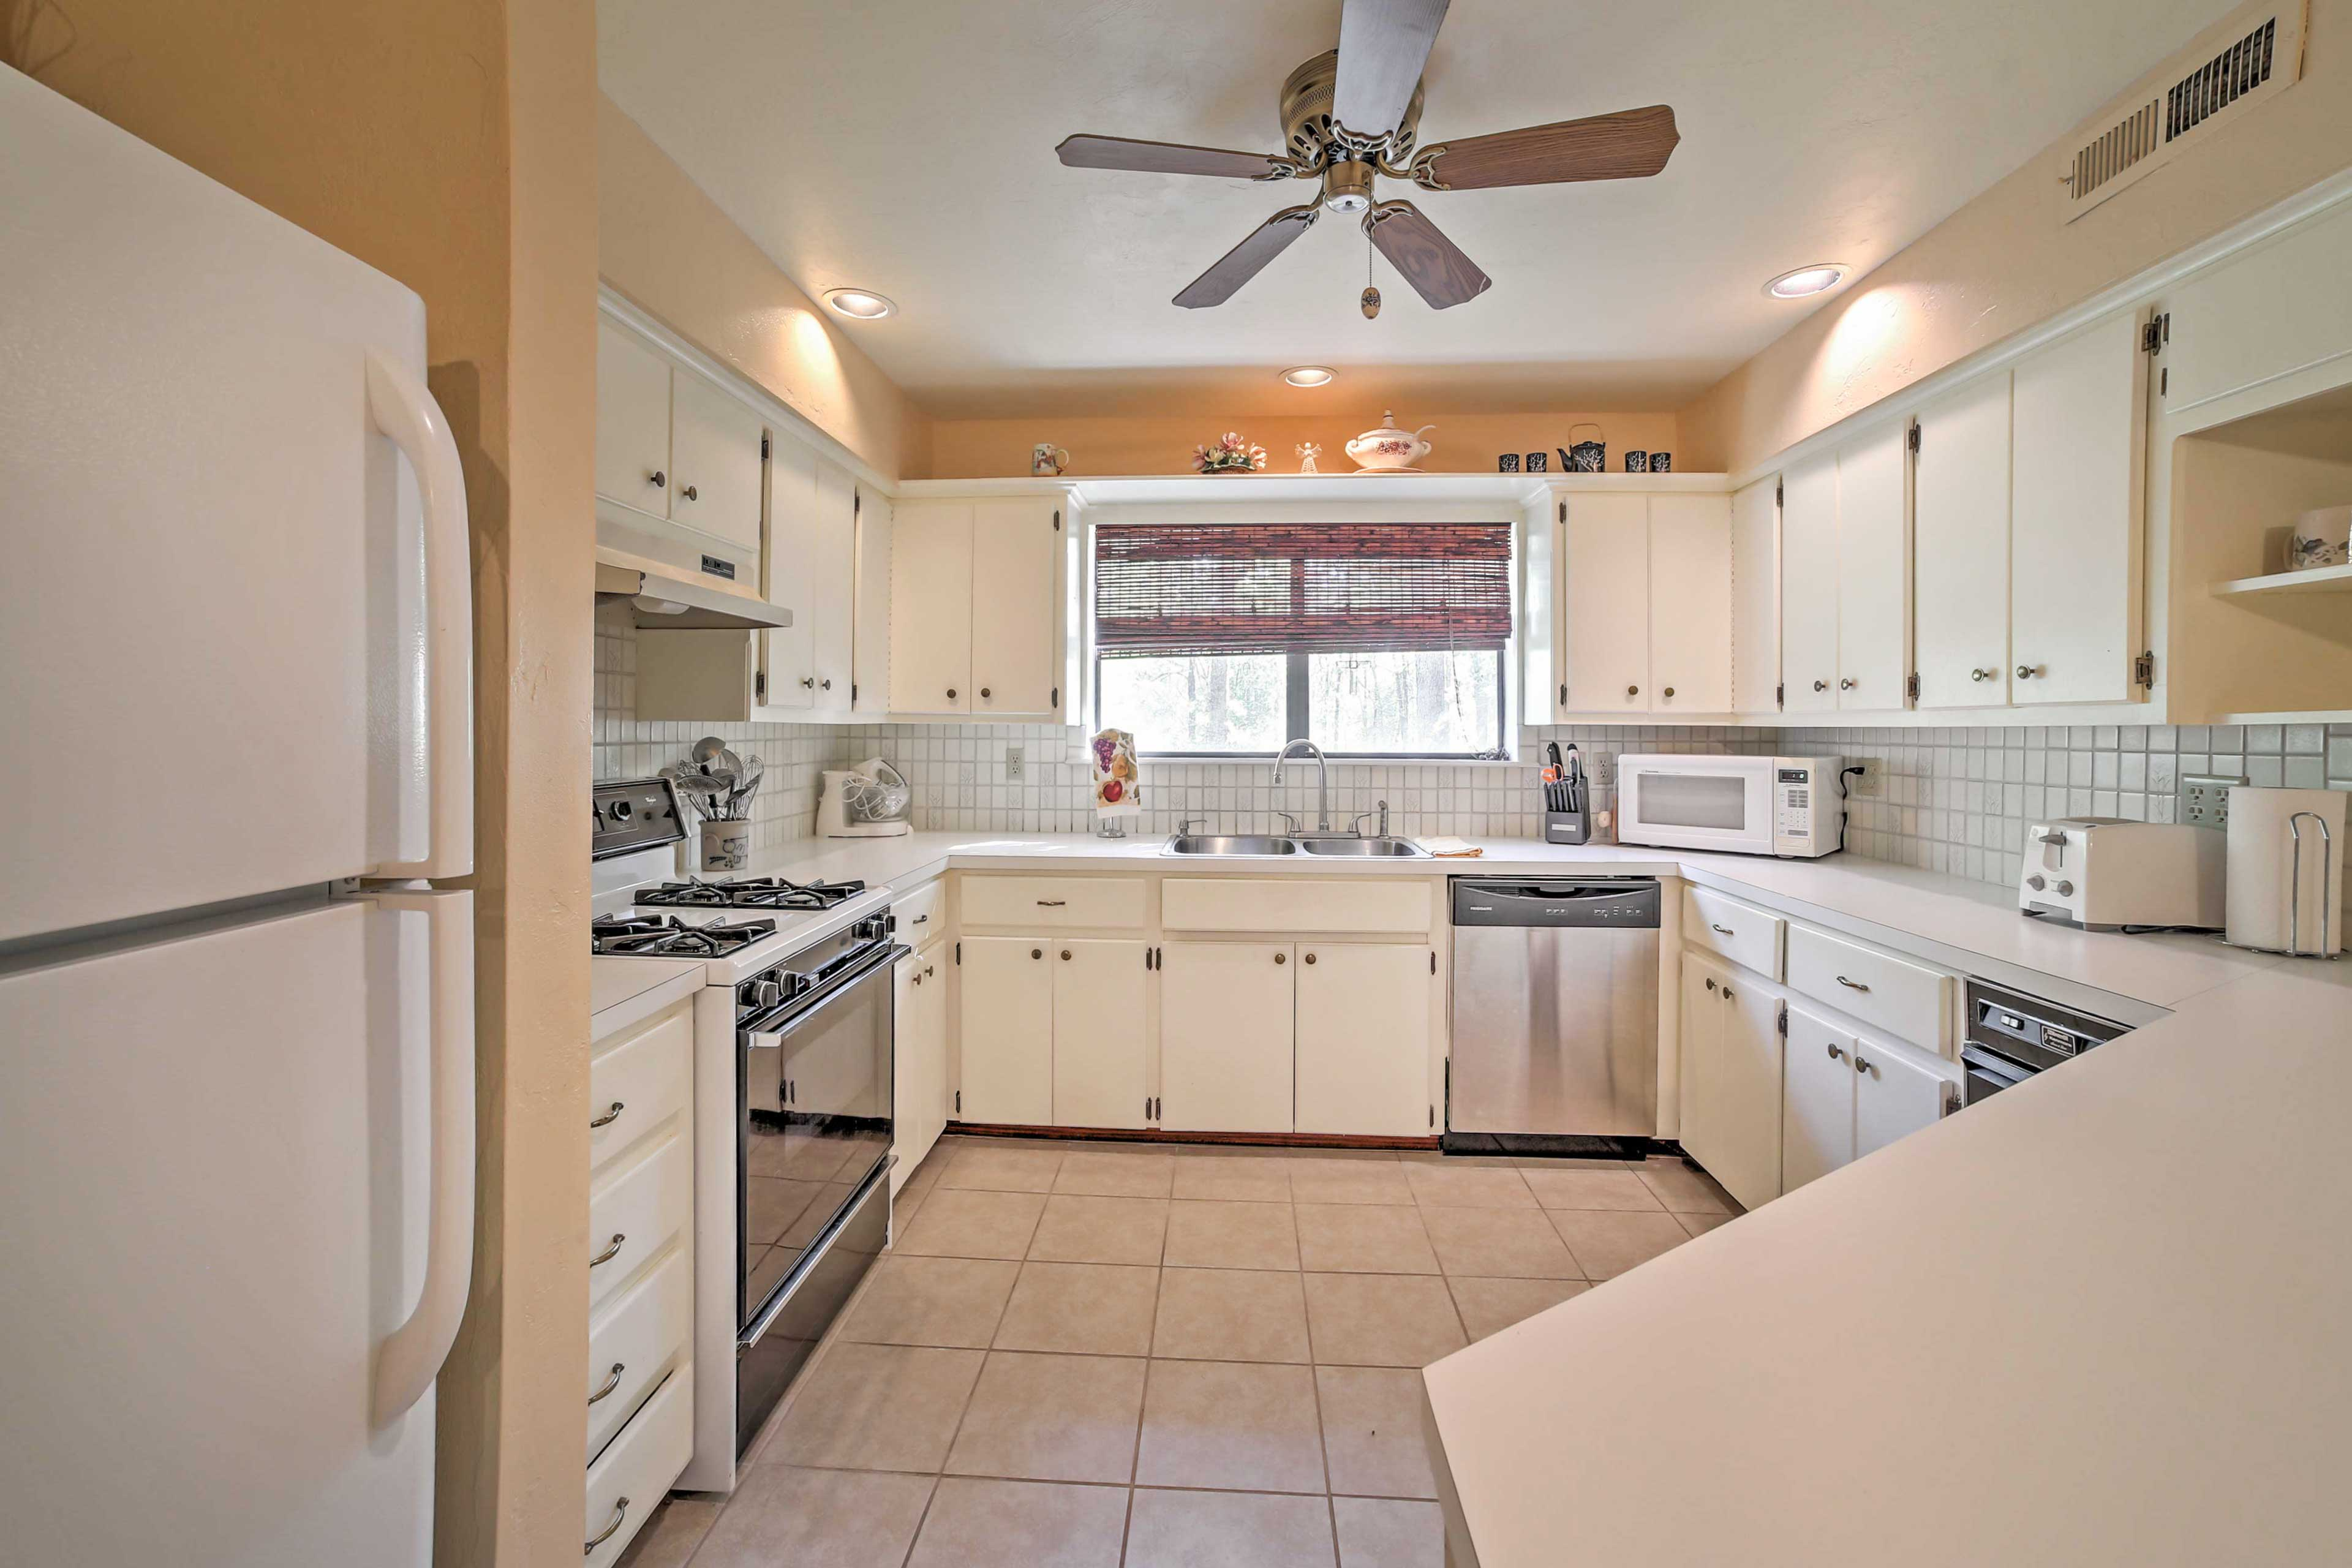 The kitchen features all up-to-date appliances.